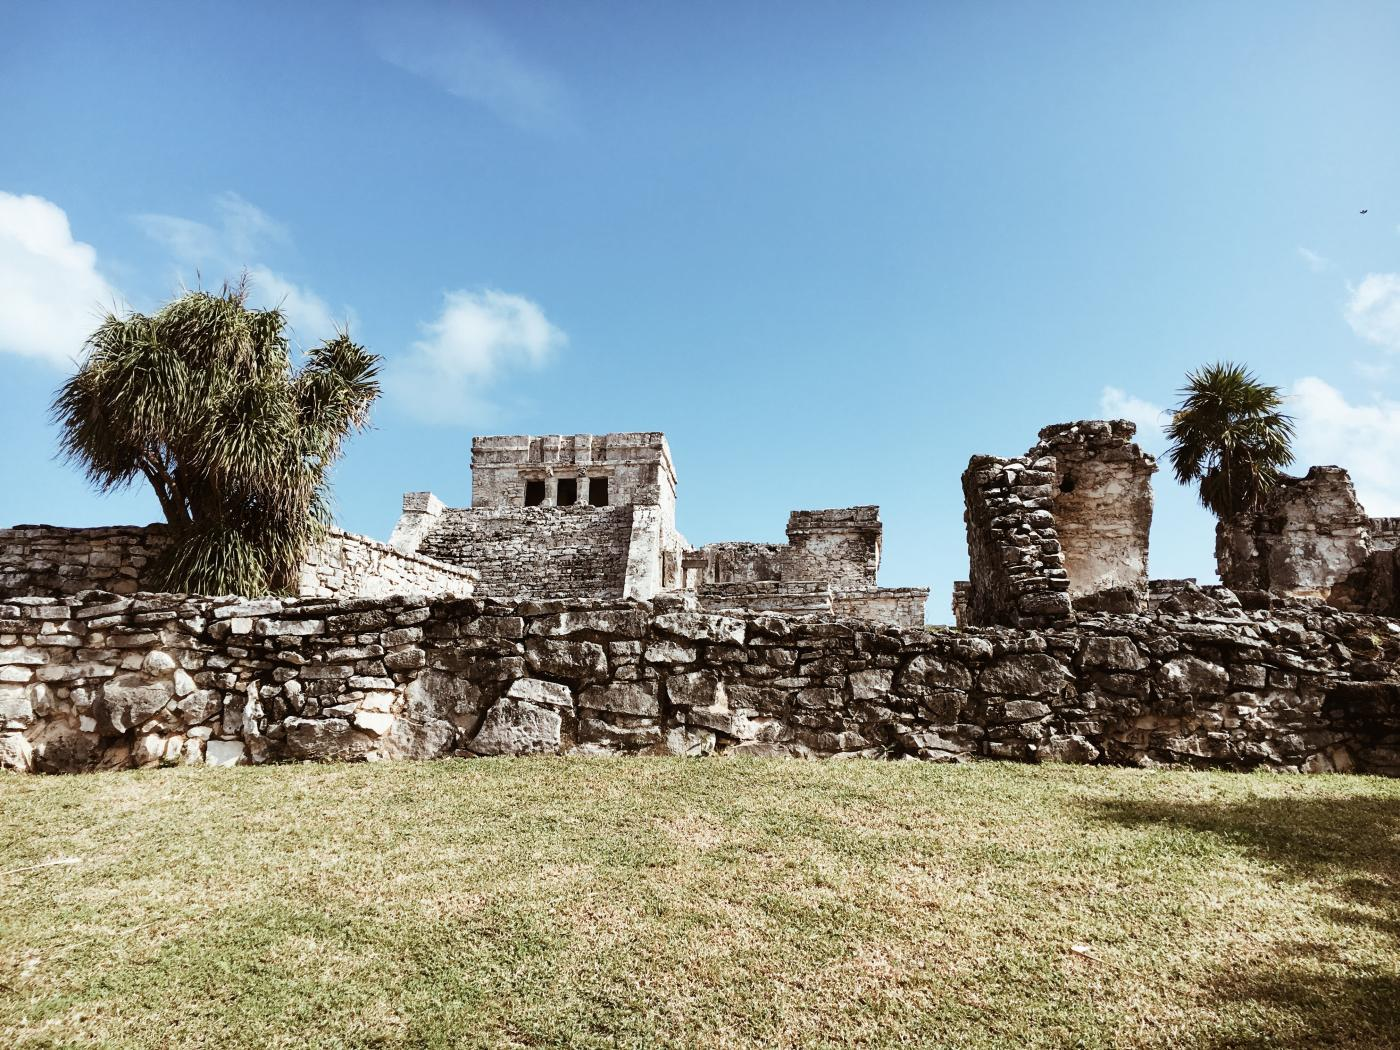 Traveling To Tulum? Make The Most Out Of Your Trip By Copy And Pasting This Itinerary